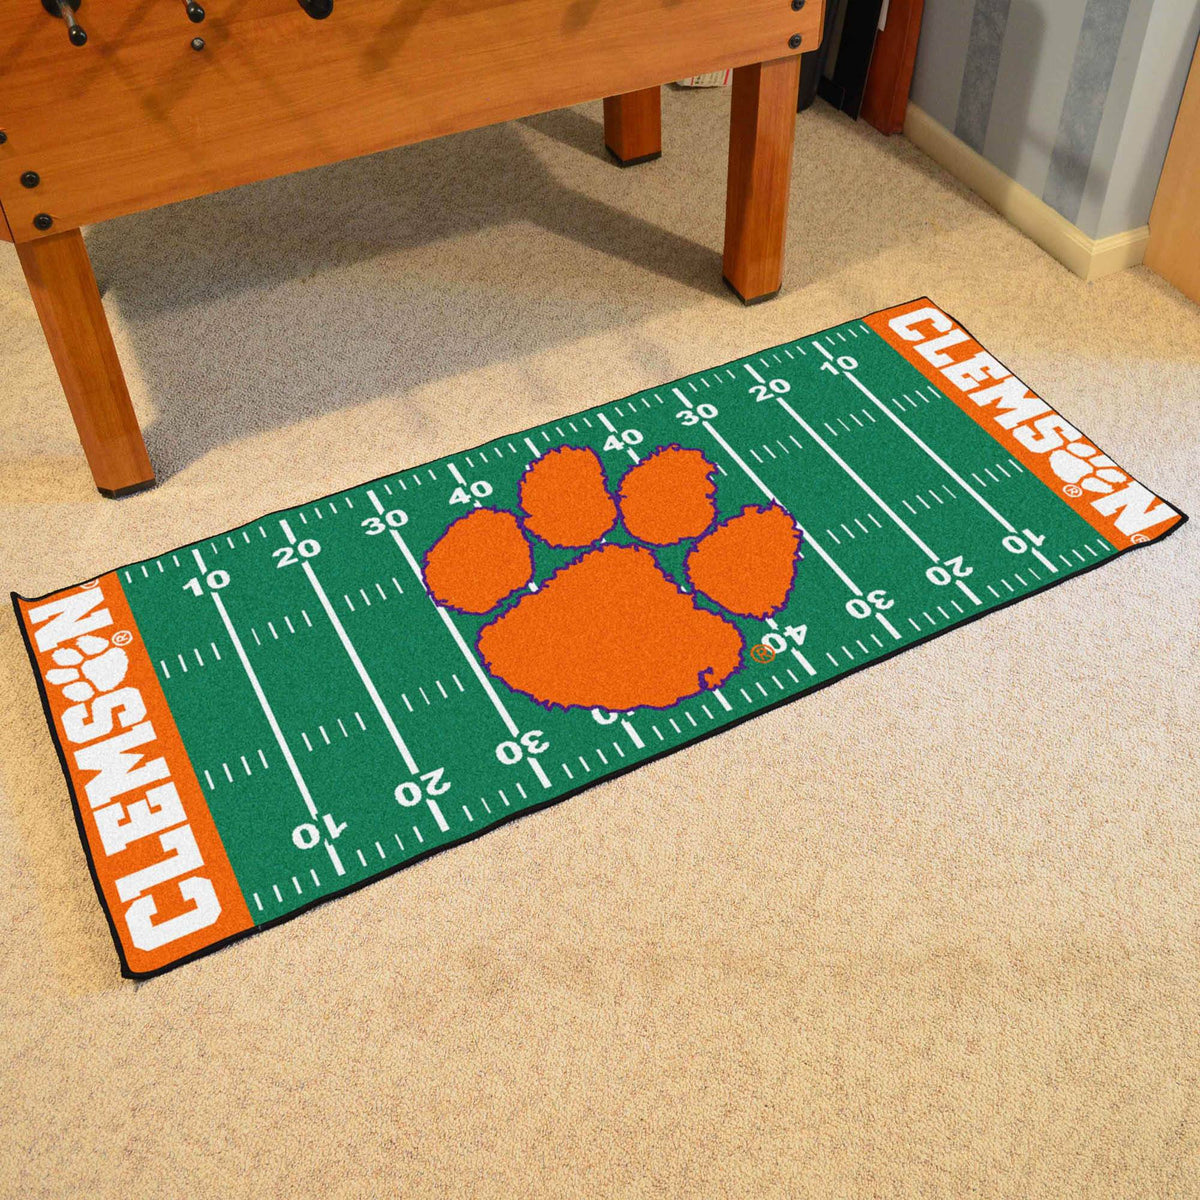 Collegiate - Football Field Runner Collegiate Mats, Rectangular Mats, Football Field Runner, Collegiate, Home Fan Mats Clemson